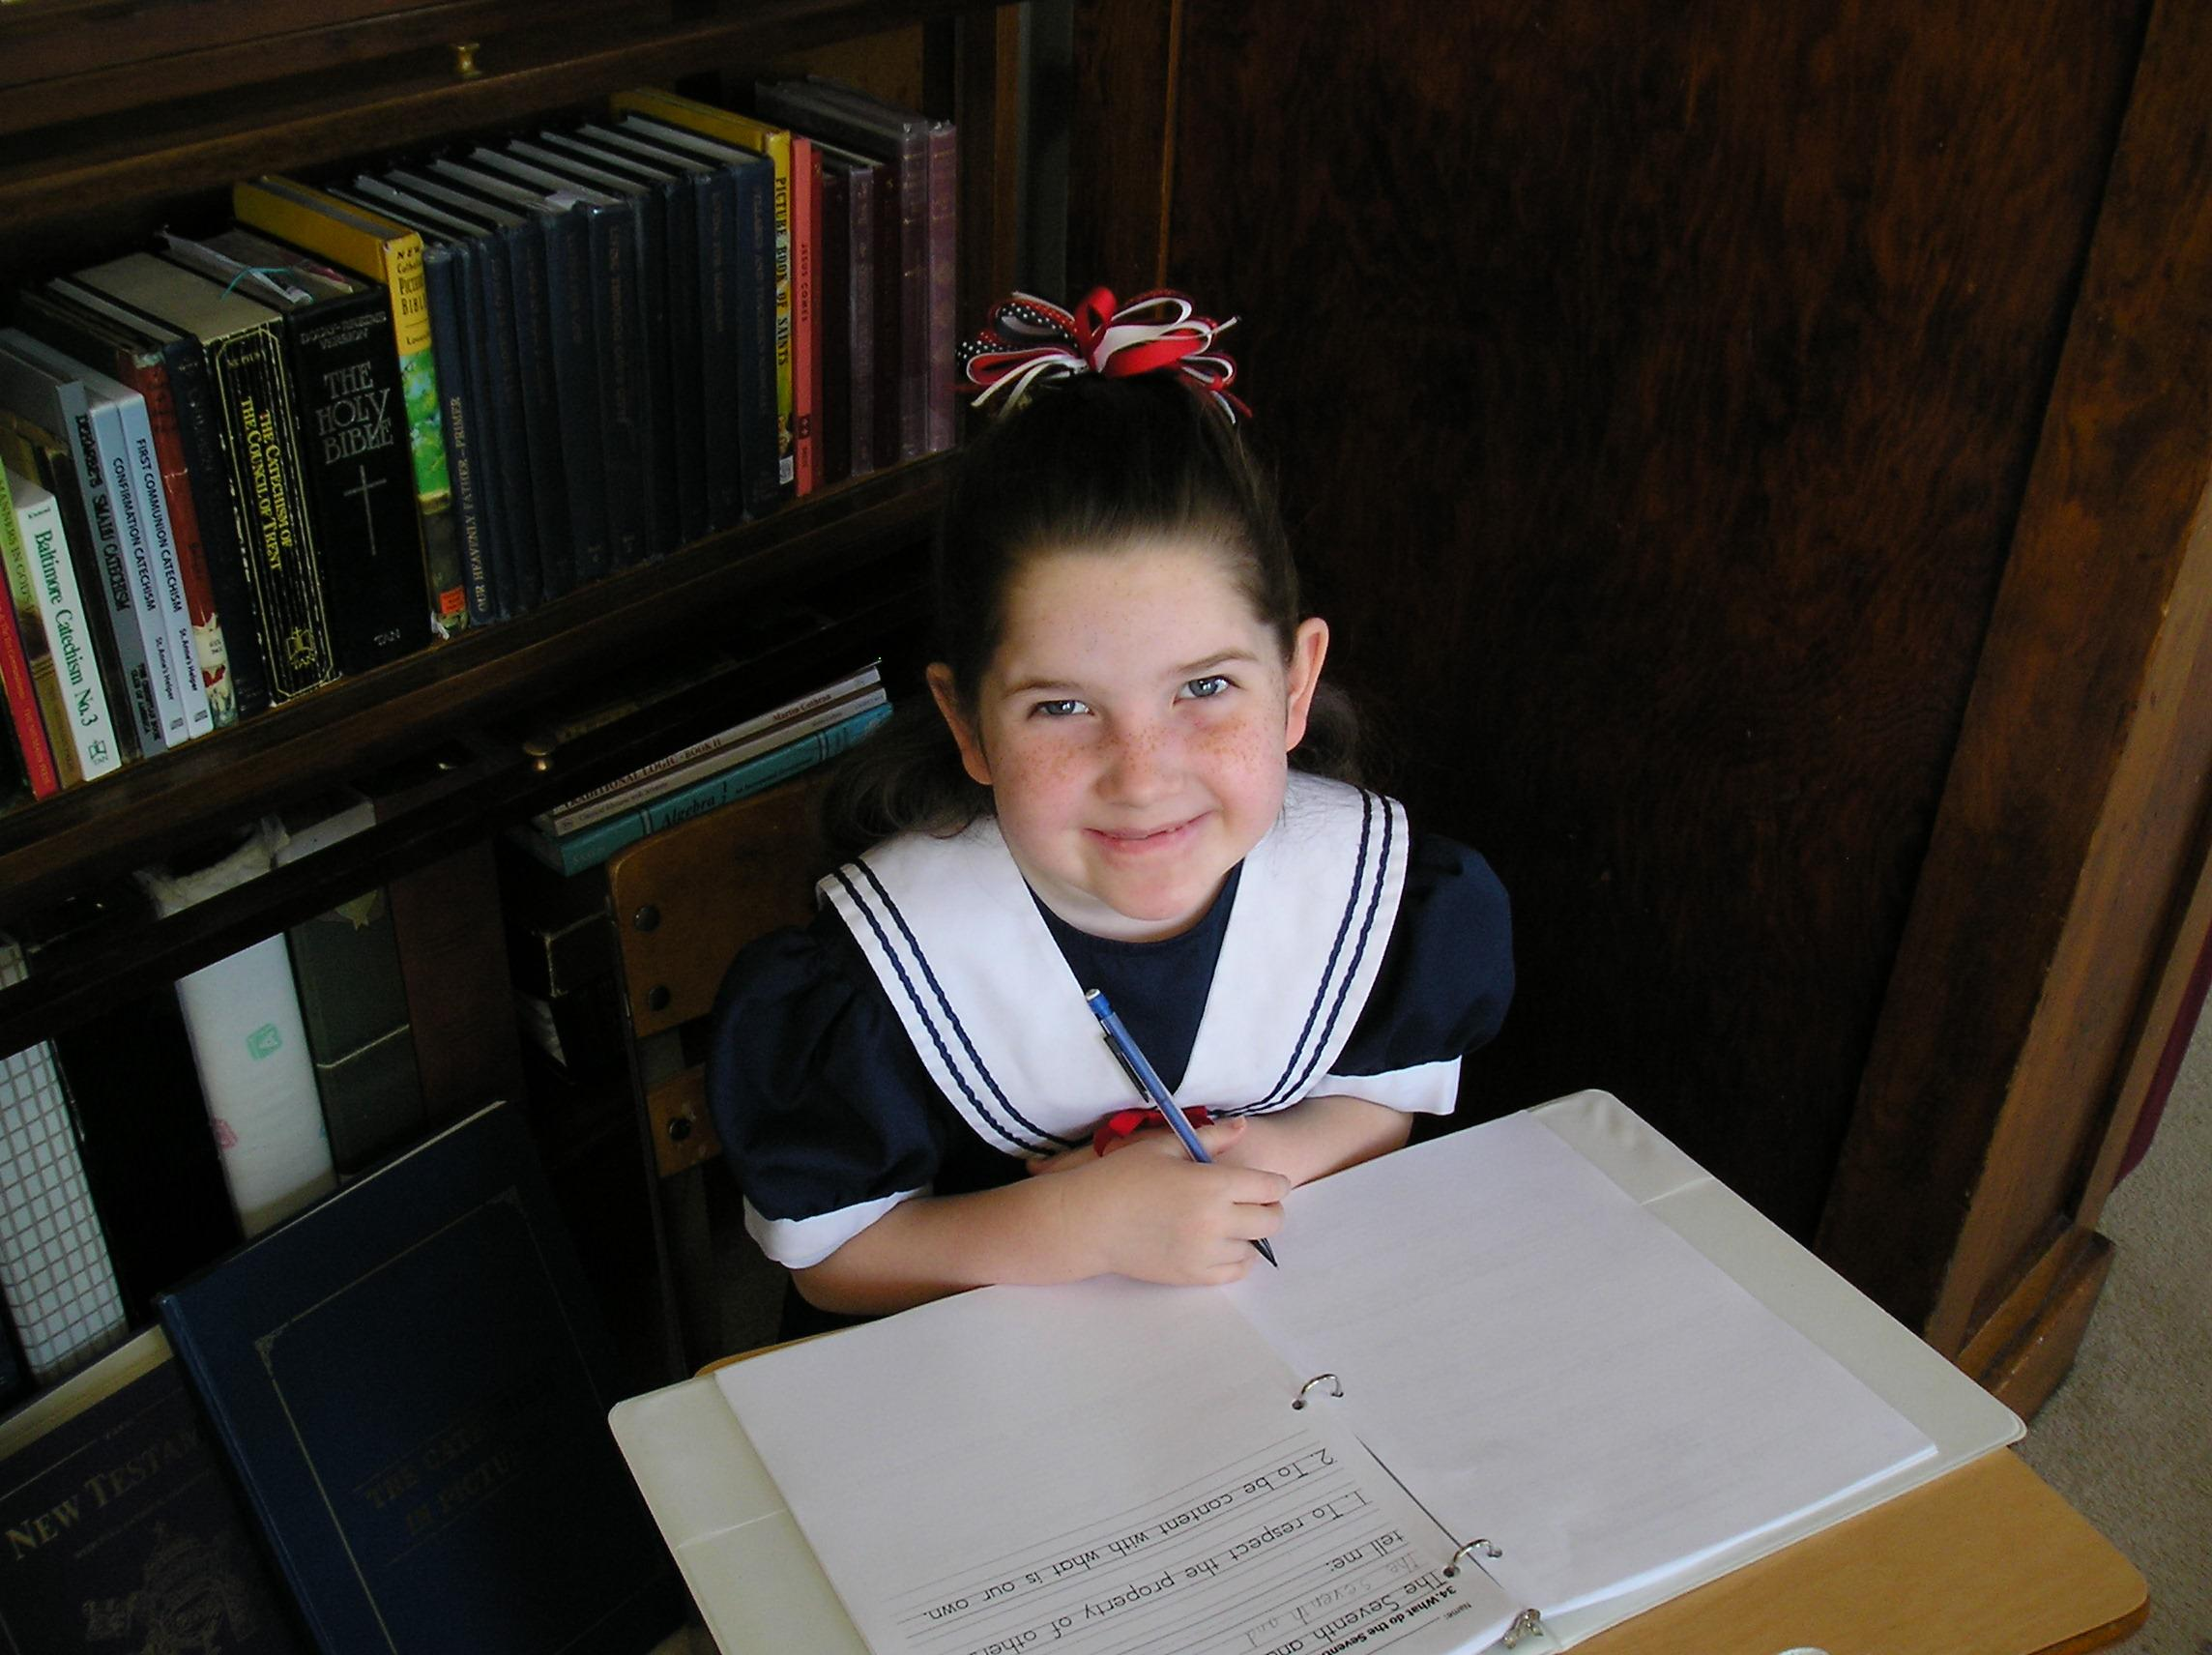 Catholic First Communion Worksheets or copybook. Awesome cursive writing practice too! Baltimore Catechism No. 1.